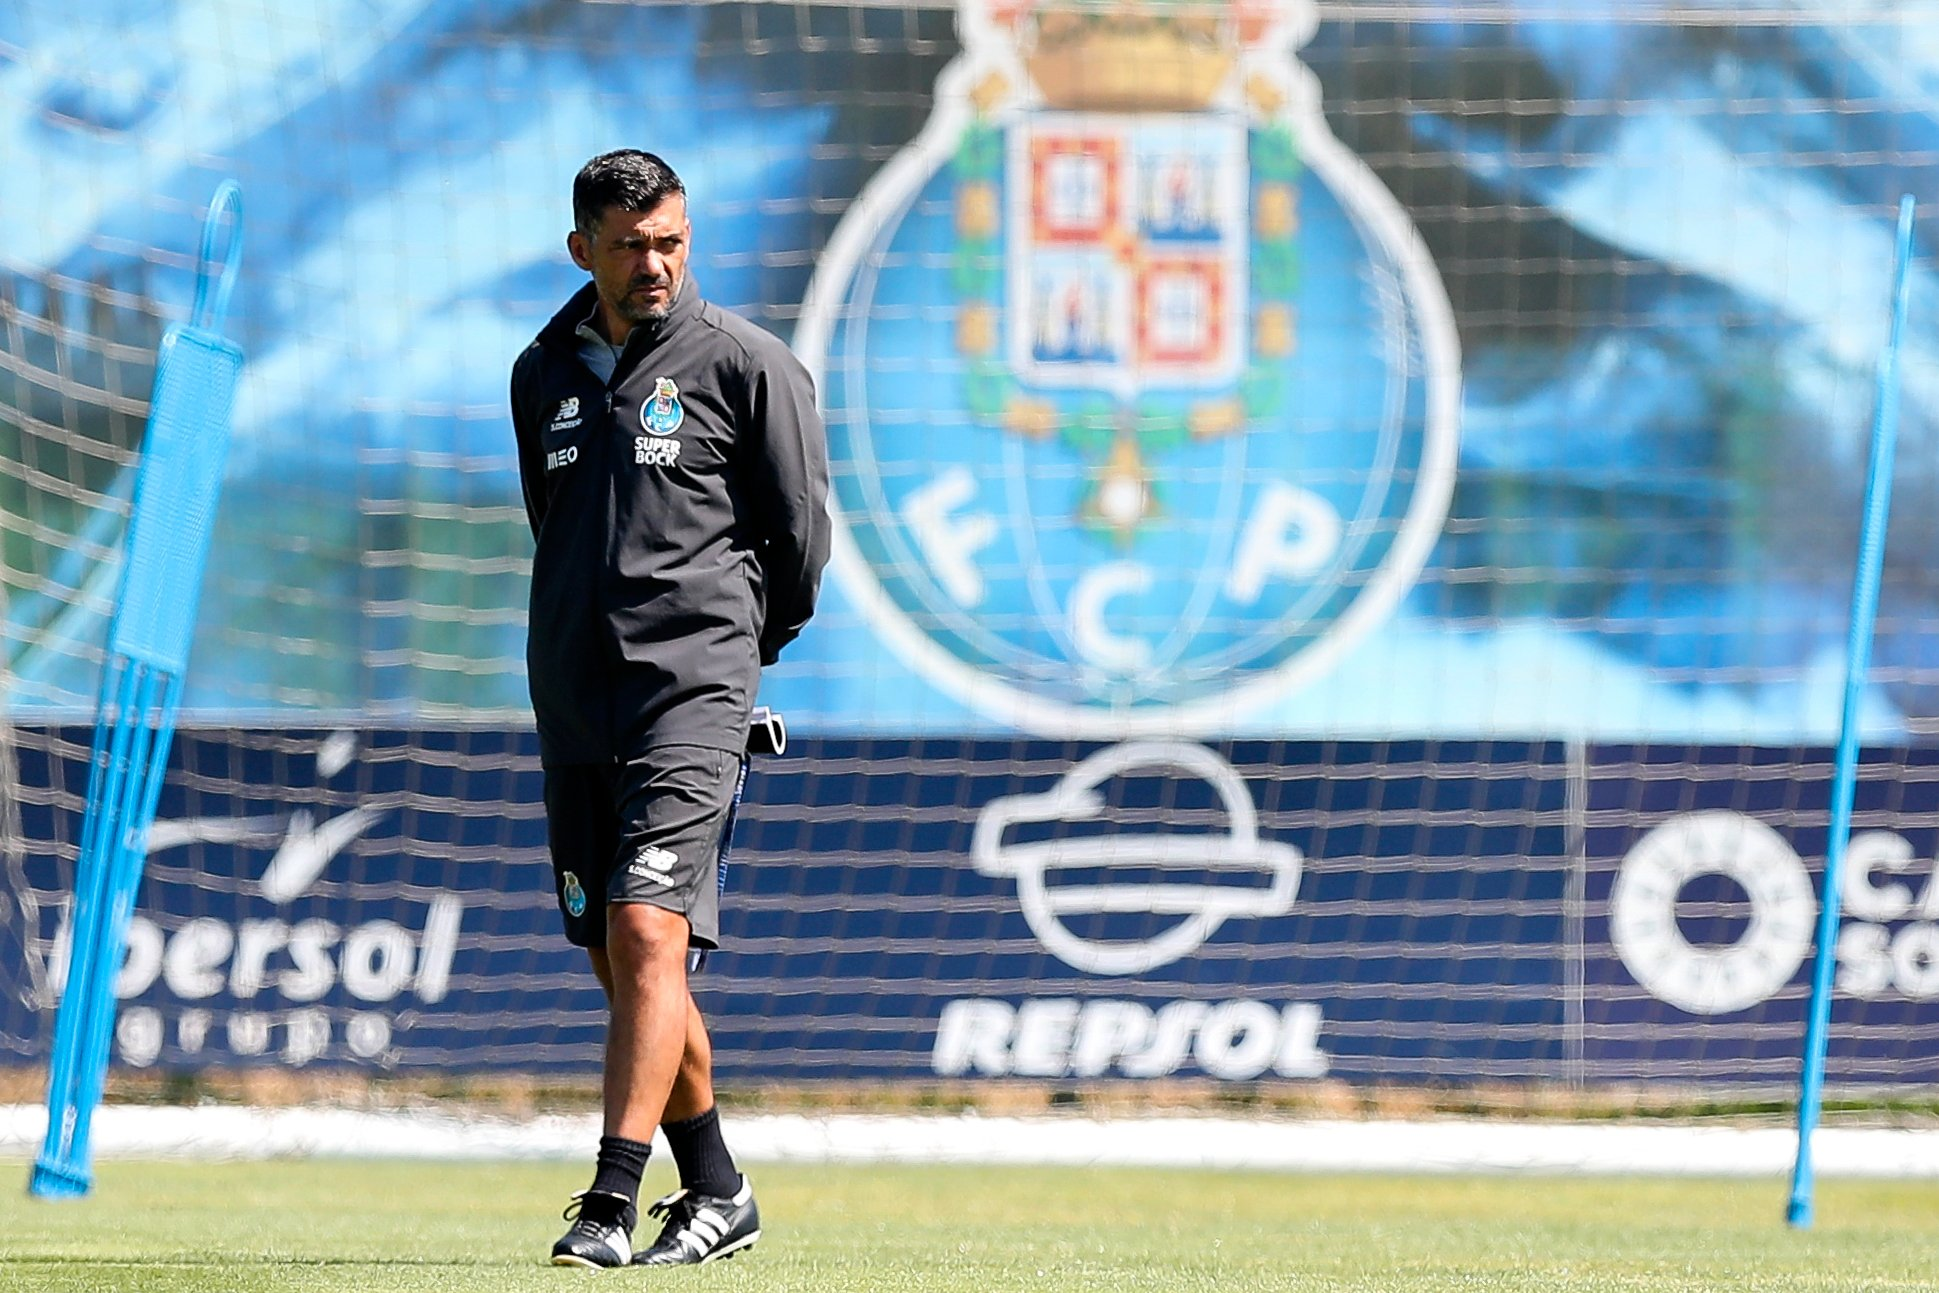 FC Porto's head-coach Sergio Conceicao during his team training session, at Olival training center, Vila Nova de Gaia, north of Portugal, 31 July 2020. FC Porto faces Benfica on the 1st August for the Portuguese Cup Final. JOSE COELHO/LUSA